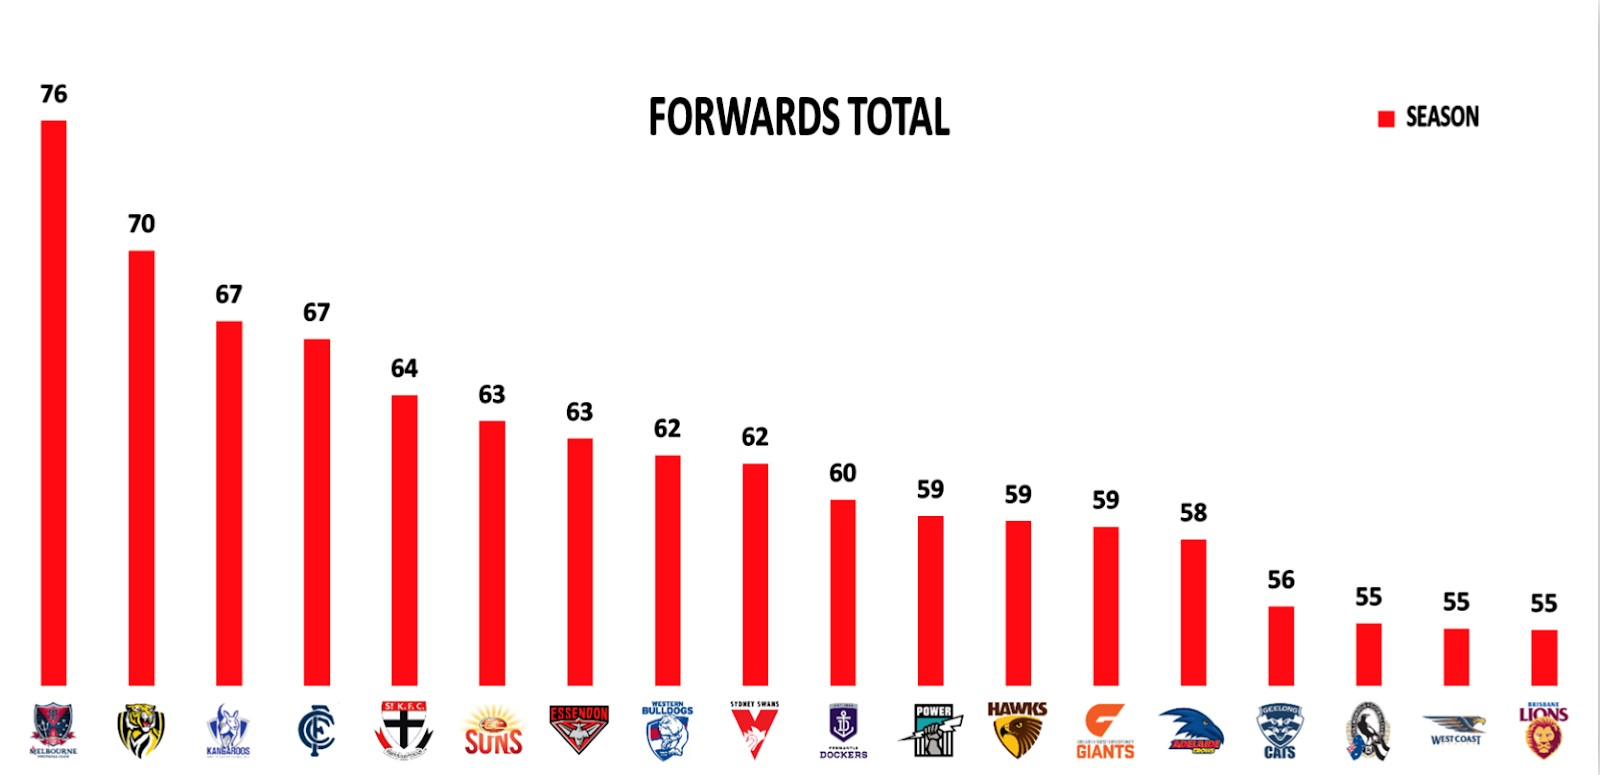 Points Against: Forwards